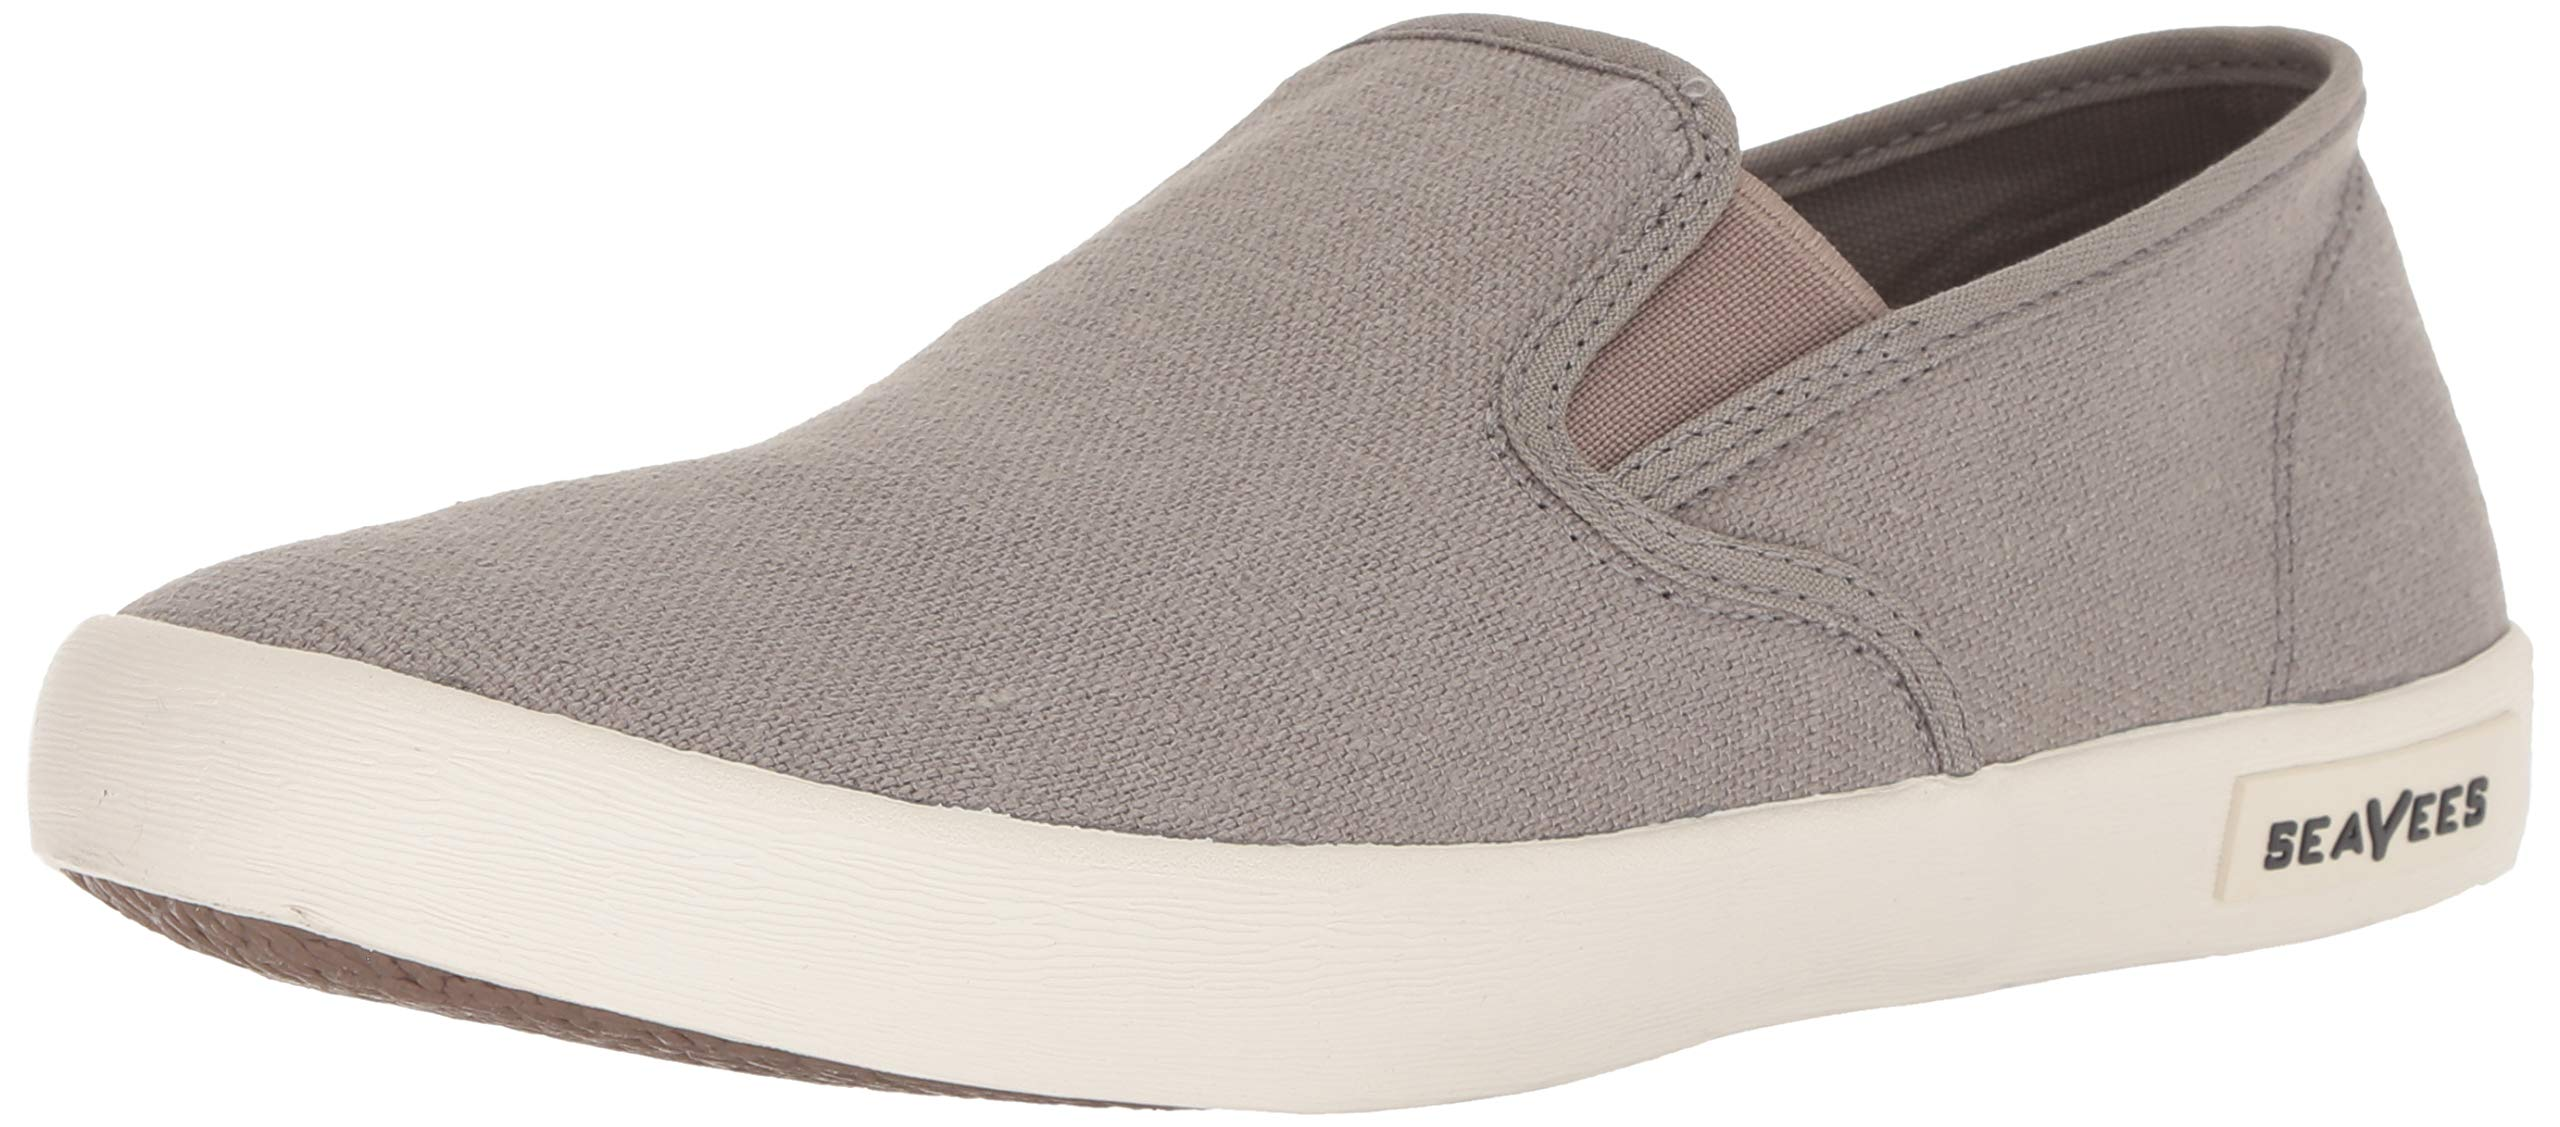 SeaVees Men's Baja Slip On Standard Casual Sneaker,Tin Grey, 12 by SeaVees (Image #1)